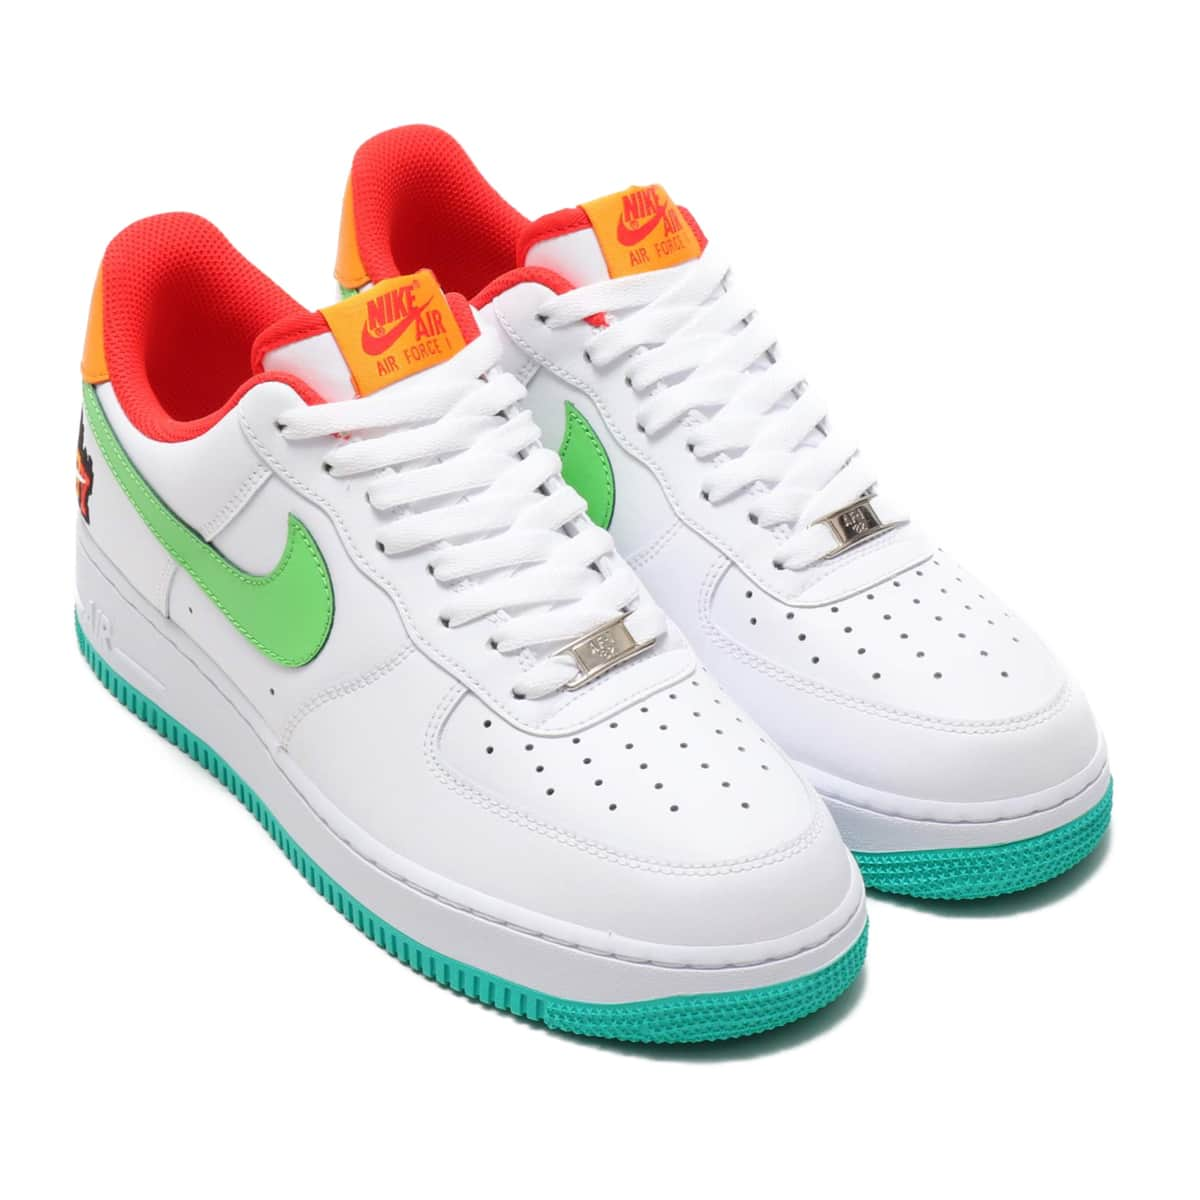 NIKE AIR FORCE 1 '07 LE WHITE/GREEN NEBULA-HABANERO RED-KUMQUAT 19HO-S_photo_large